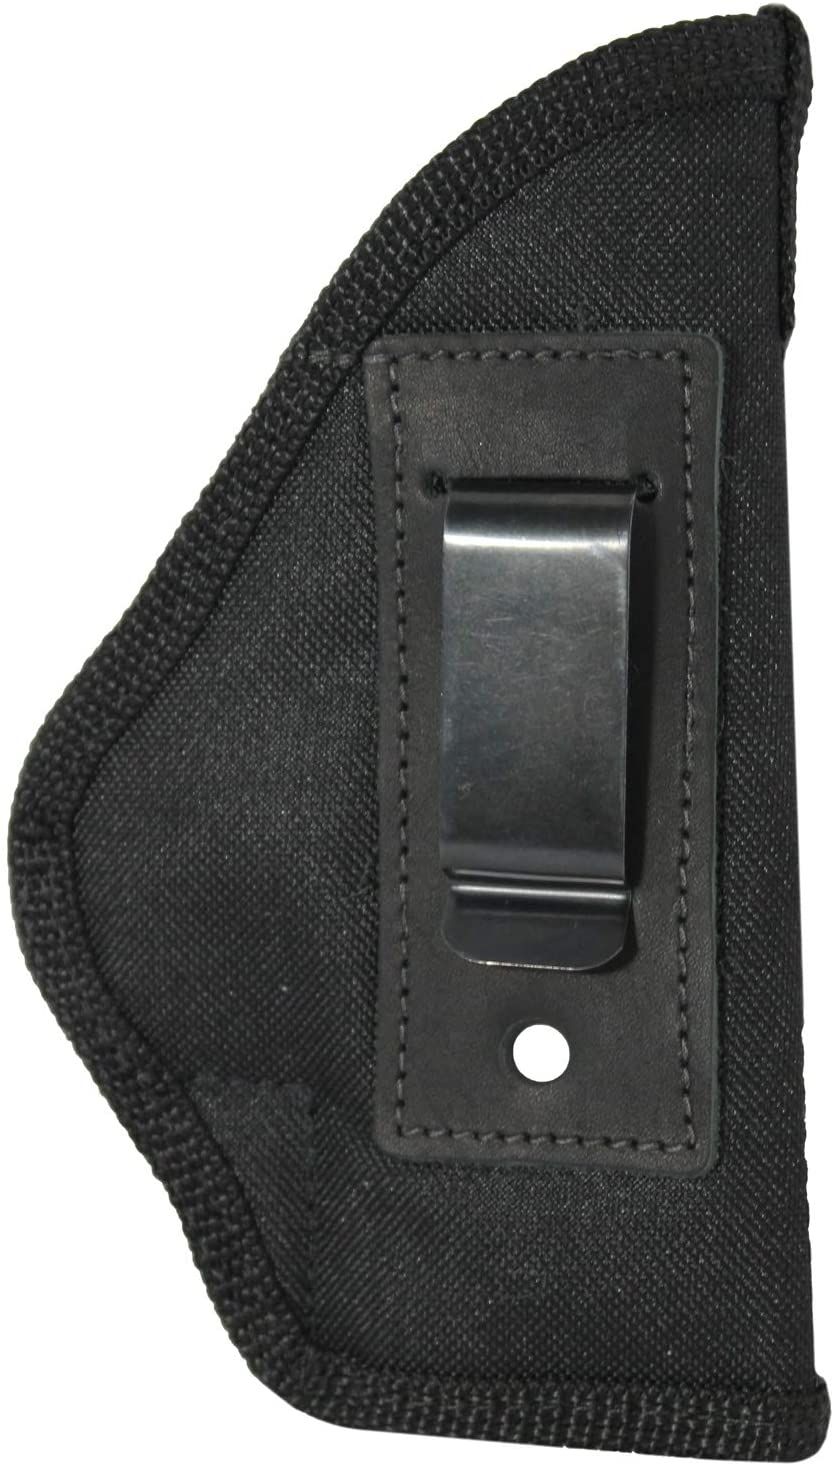 Barsony New Inside The Waistband Gun Holster for Compact Sub-Compact 9mm .40 .45